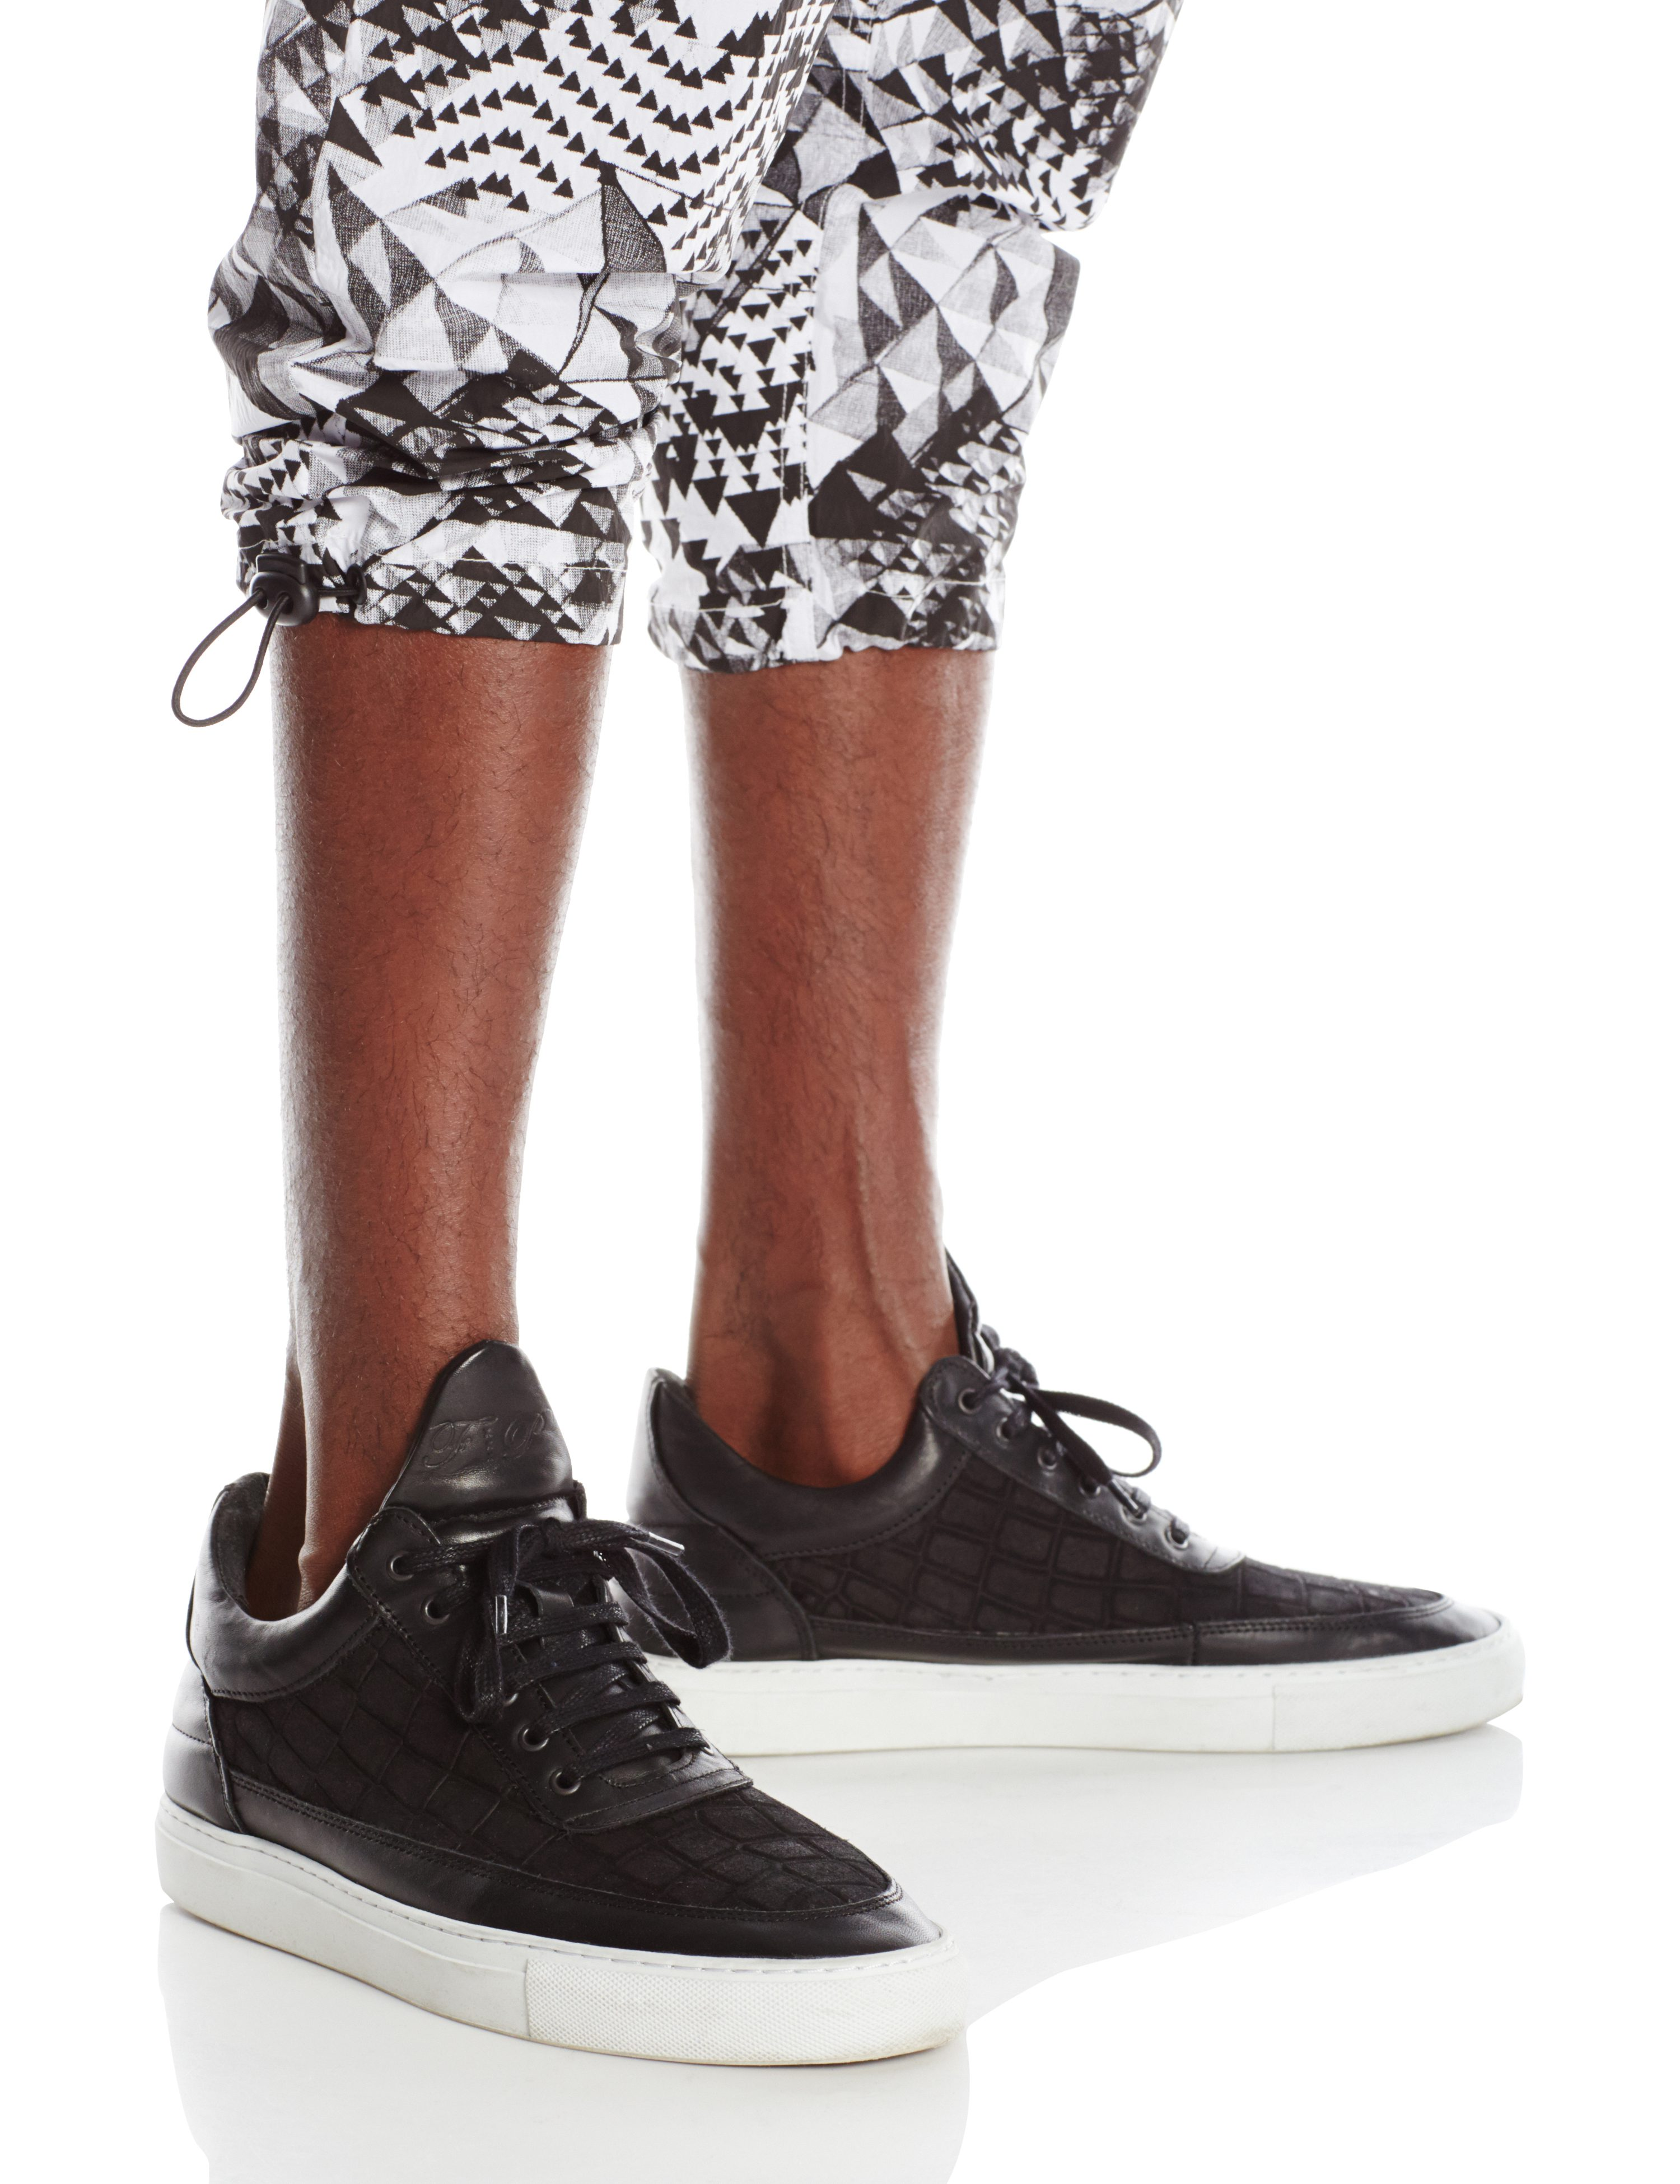 DETAIL02-DROP PANT 2.0 WHITE BLACK PRINT.0602